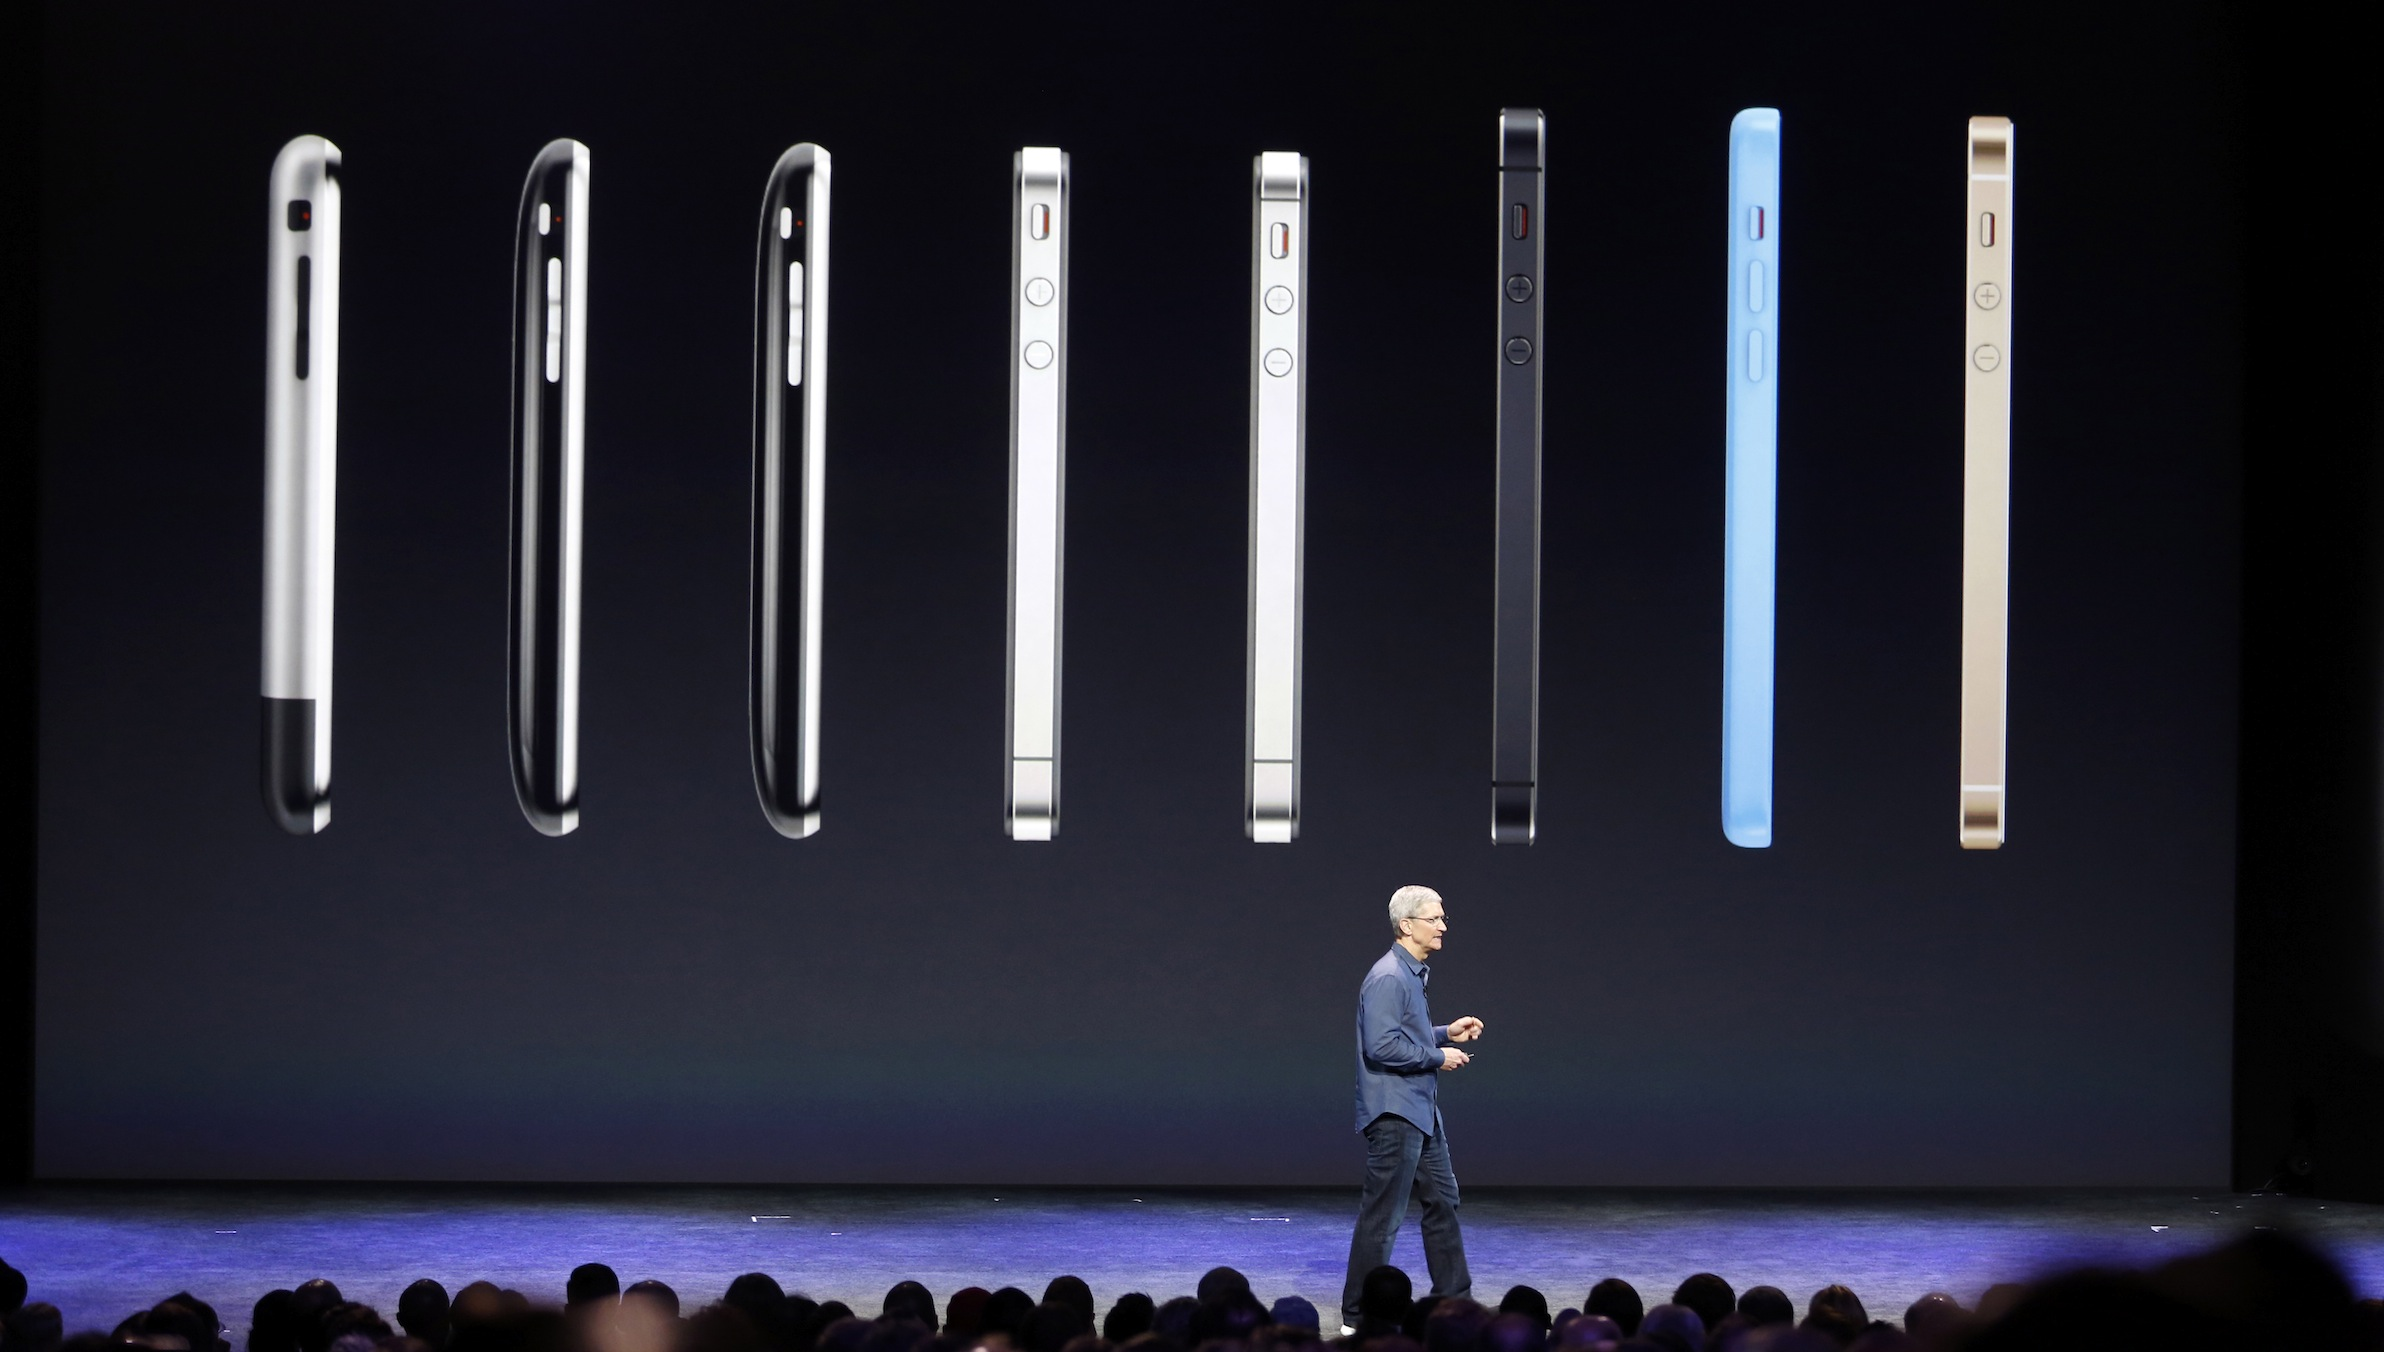 Apple Chief Executive (CEO) Tim Cook speaks on stage during an Apple event announcing the iPhone 6 and the iPhone 6 Plus at the Flint Center in Cupertino, California, September 9, 2014. REUTERS/Stephen Lam  (UNITED STATES - Tags: BUSINESS SCIENCE TECHNOLOGY TELECOMS) - RTR45LFA